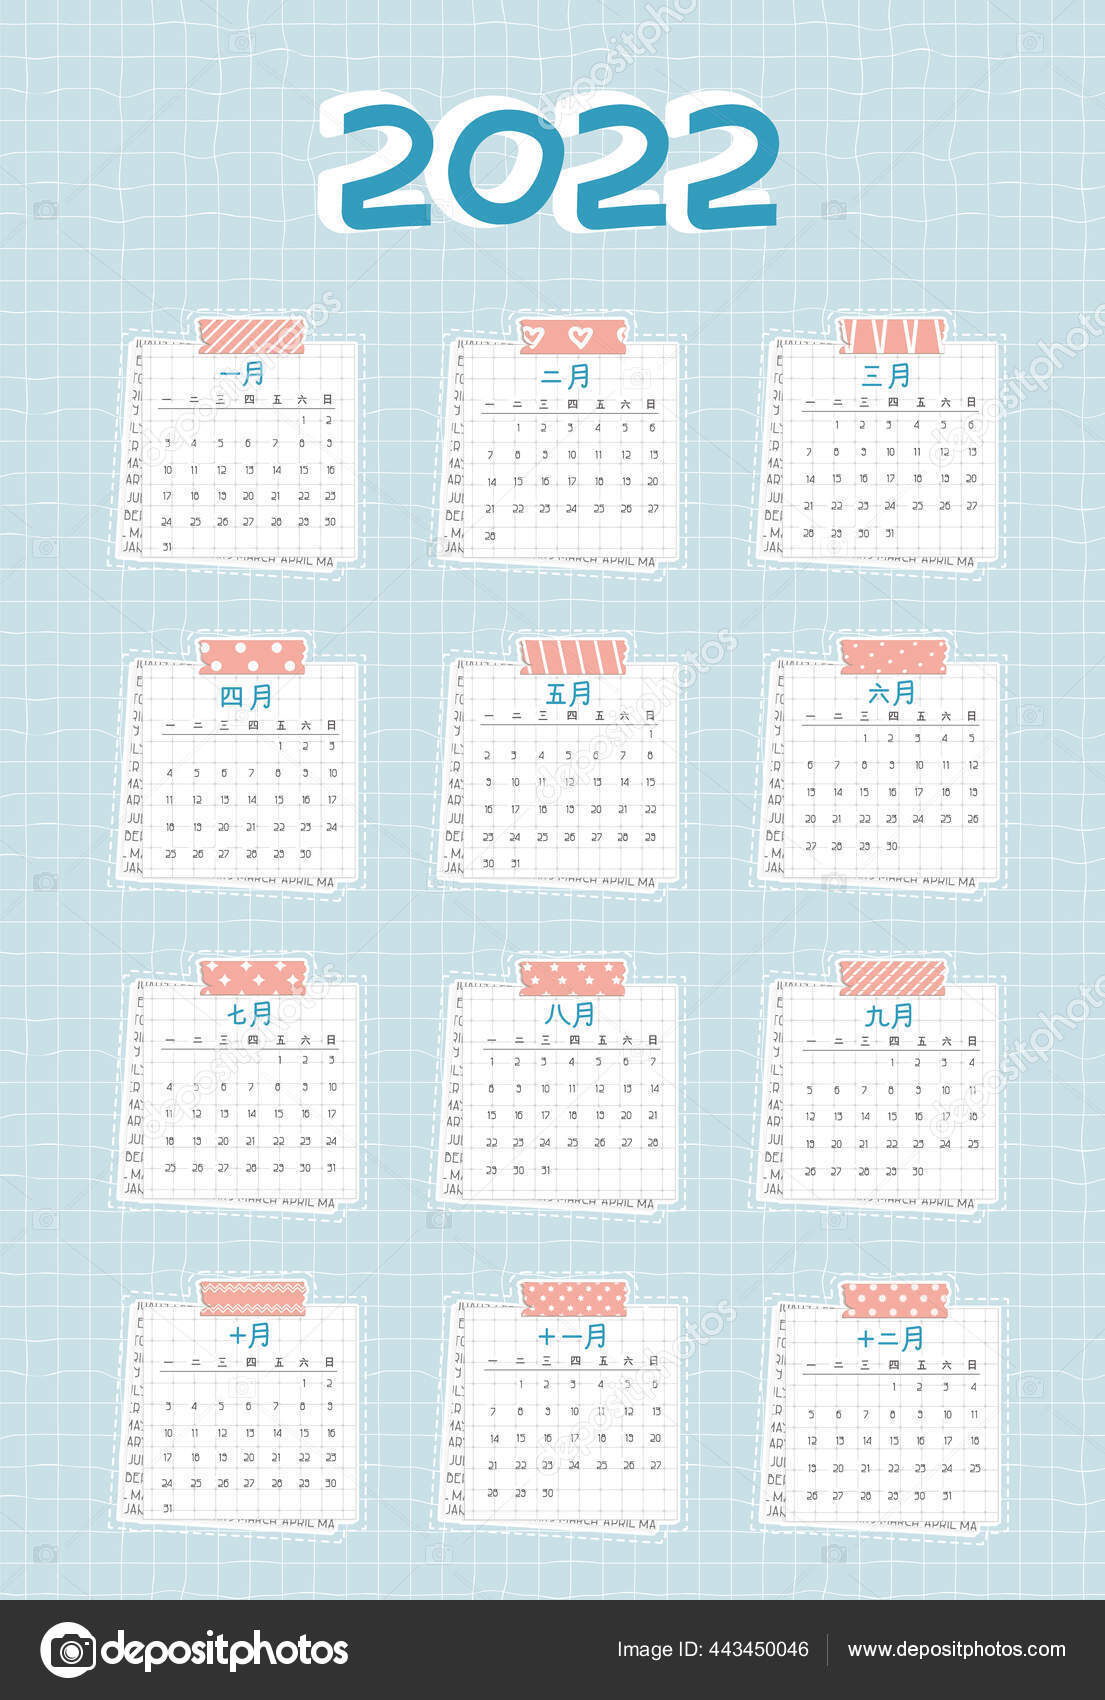 Chinese Calendar 2022.Calendar 2022 January December Chinese Language Every Month Squared Paper Vector Image By C Essskina Vector Stock 443450046